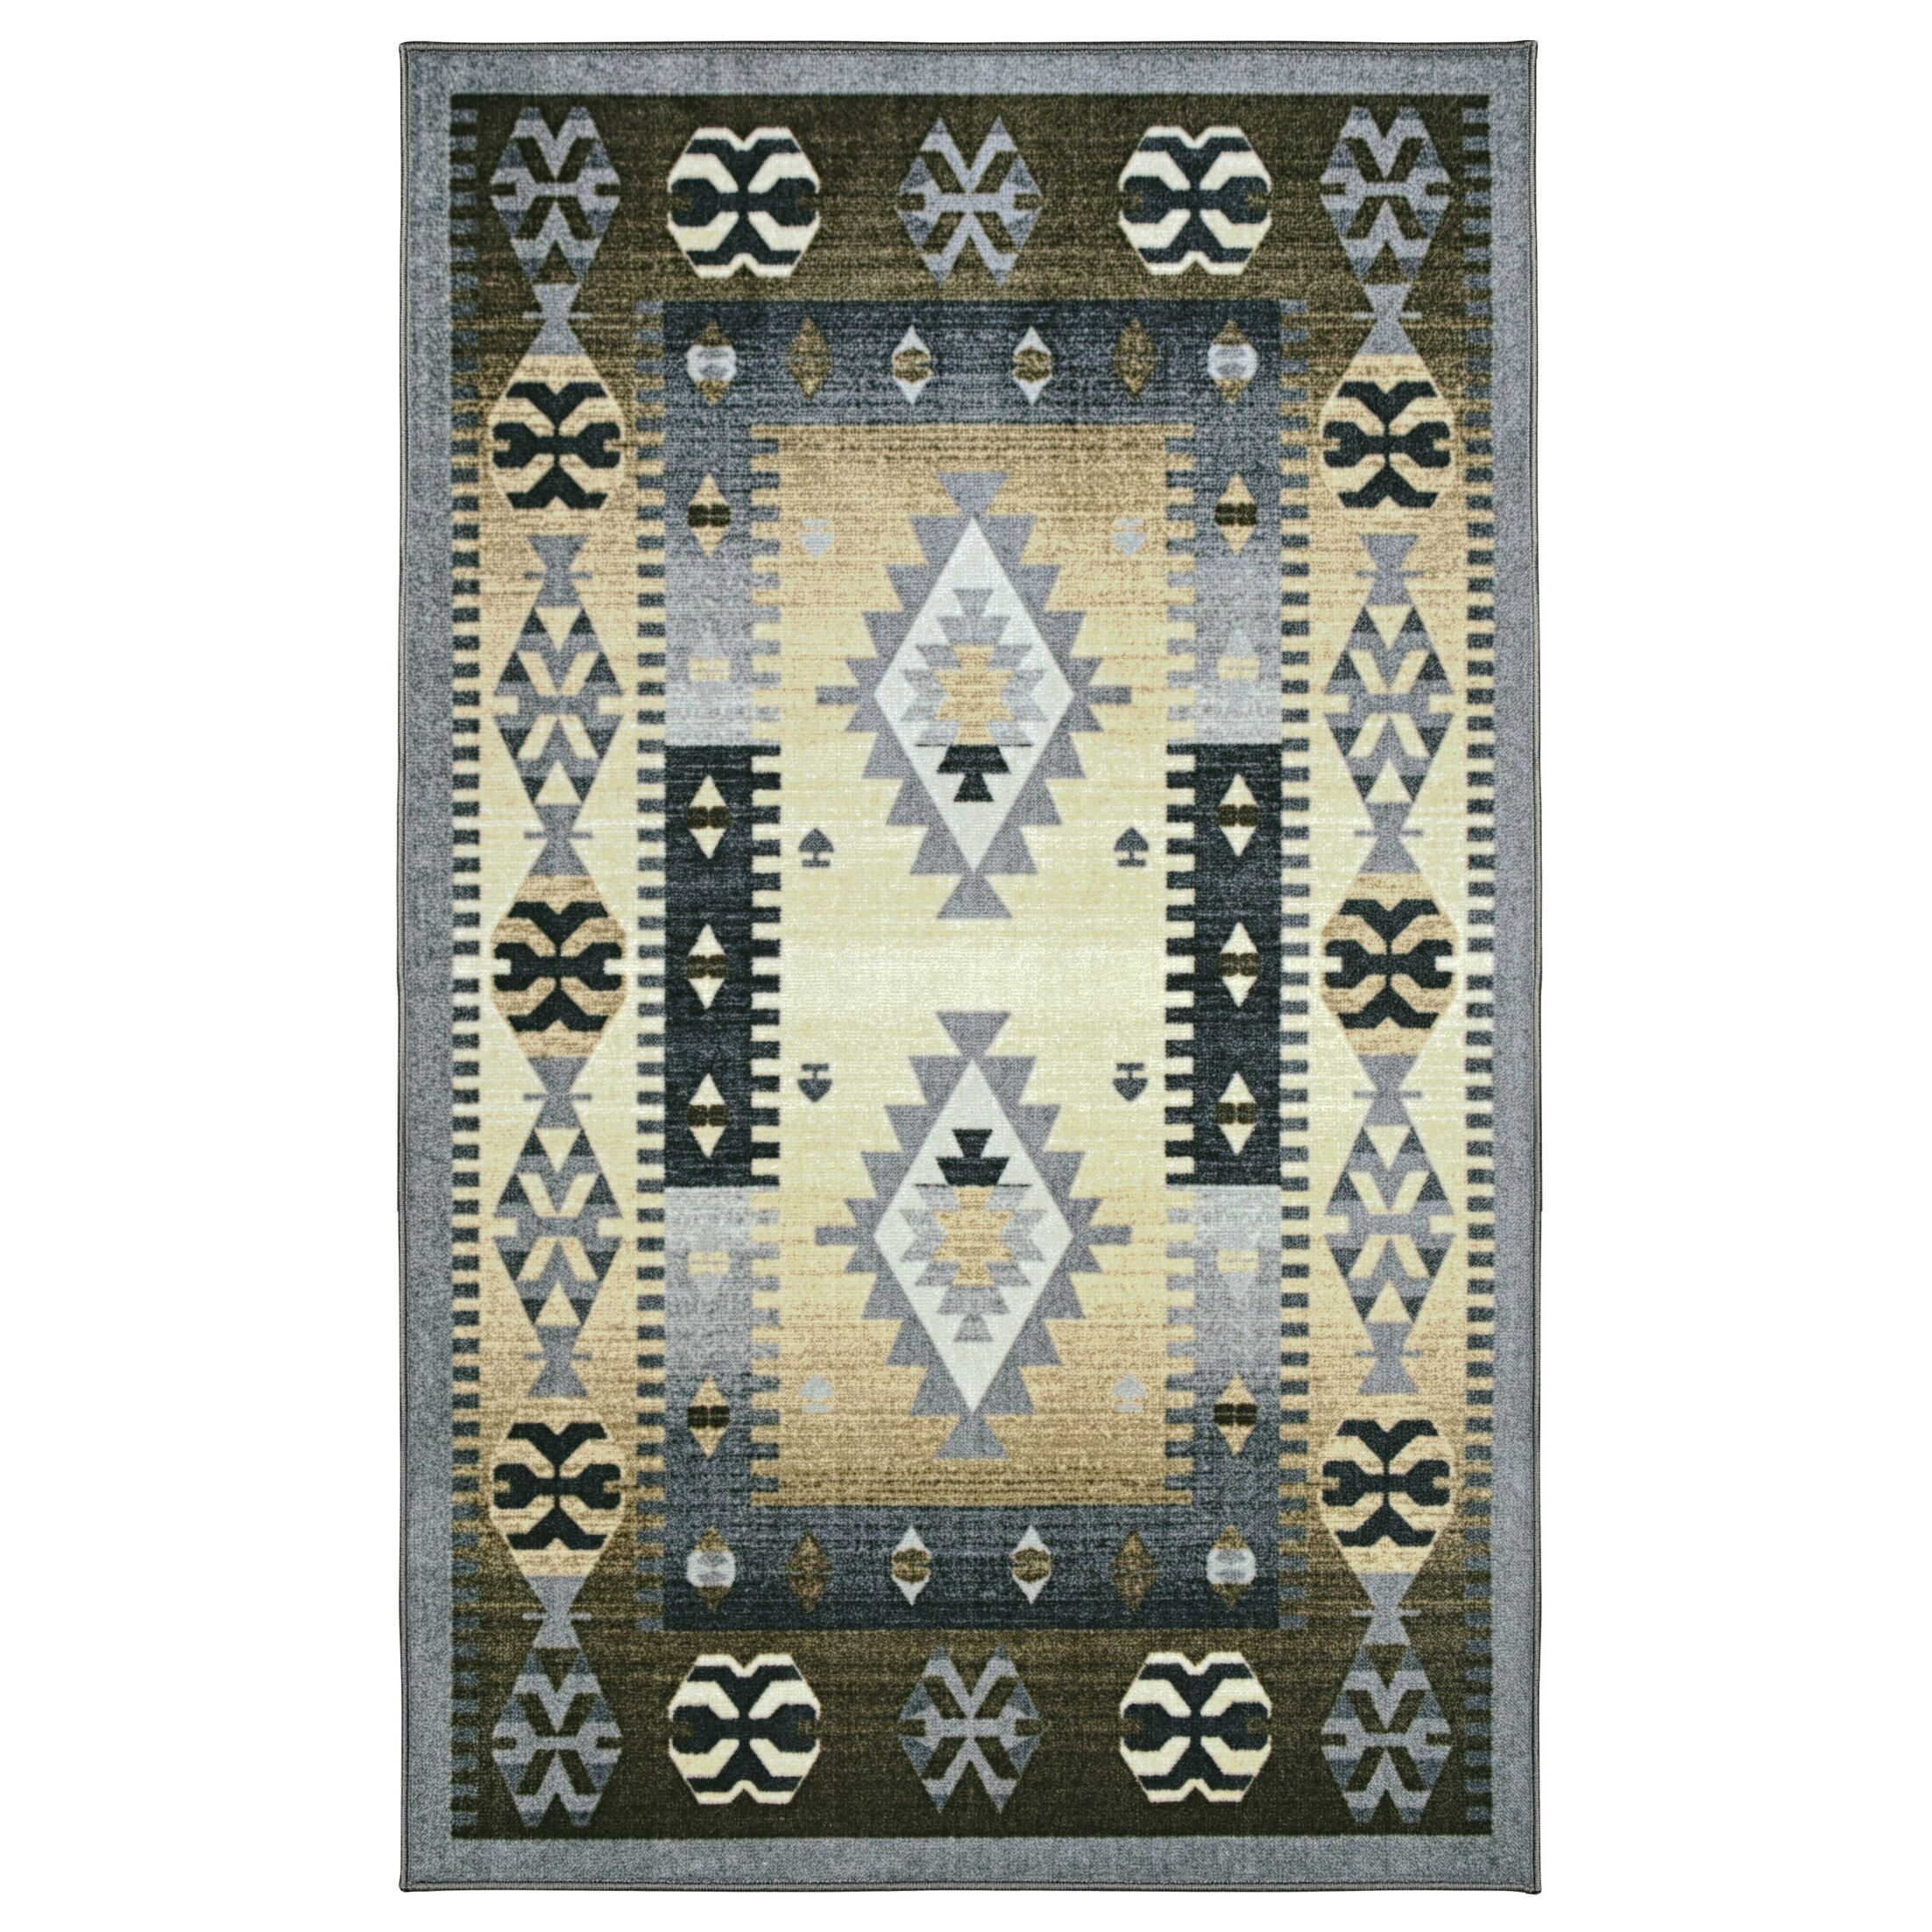 Amy Printed Non-Slip Gray/Beige Area Rug Rug Size: Rectangle 8' x 10'